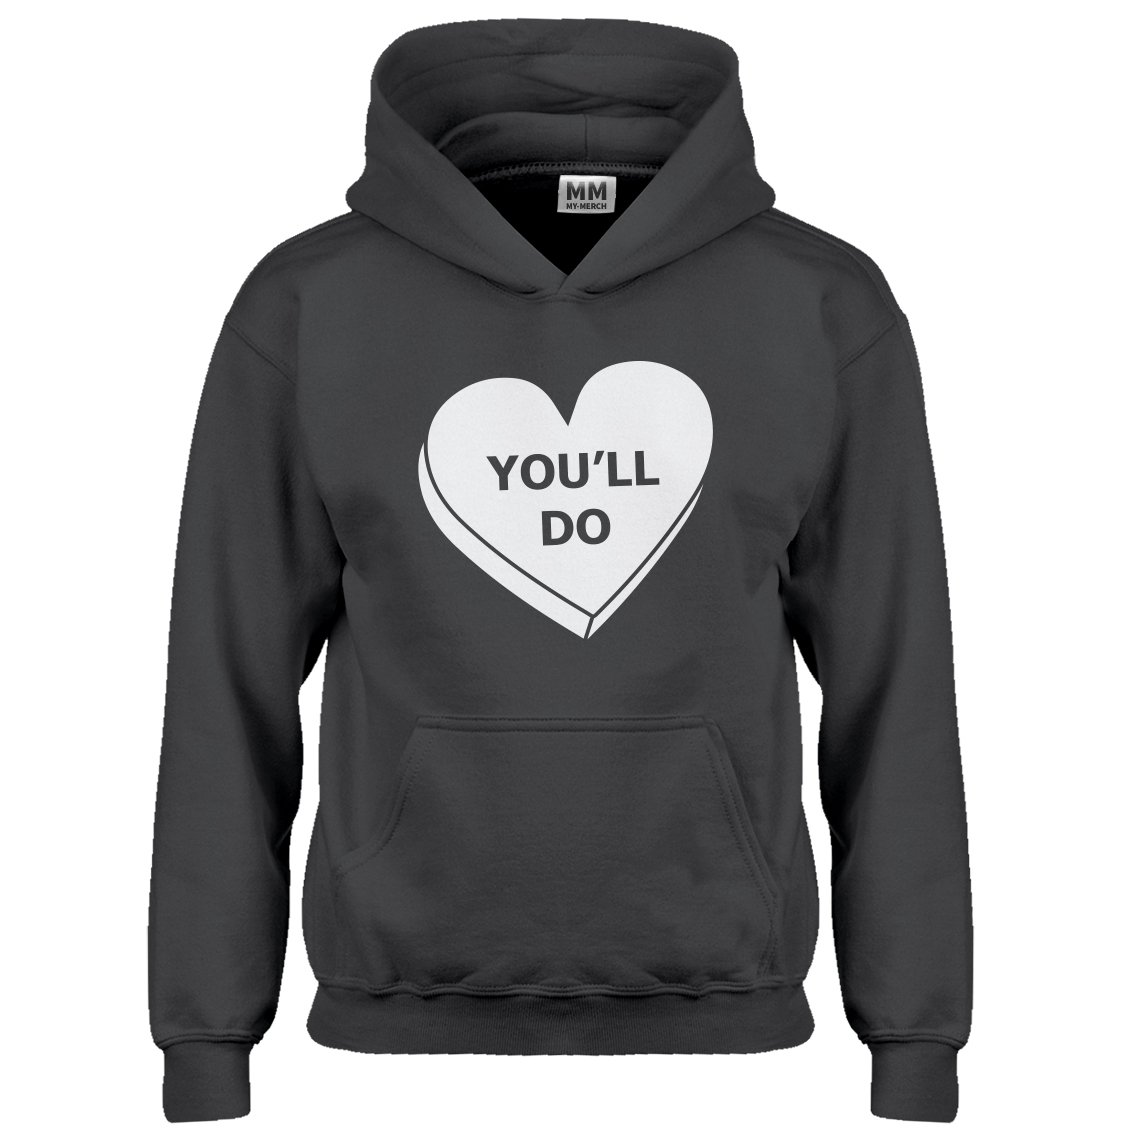 Indica Plateau Kids Hoodie You'll Do Valentines Day Medium Charcoal Grey Hoodie